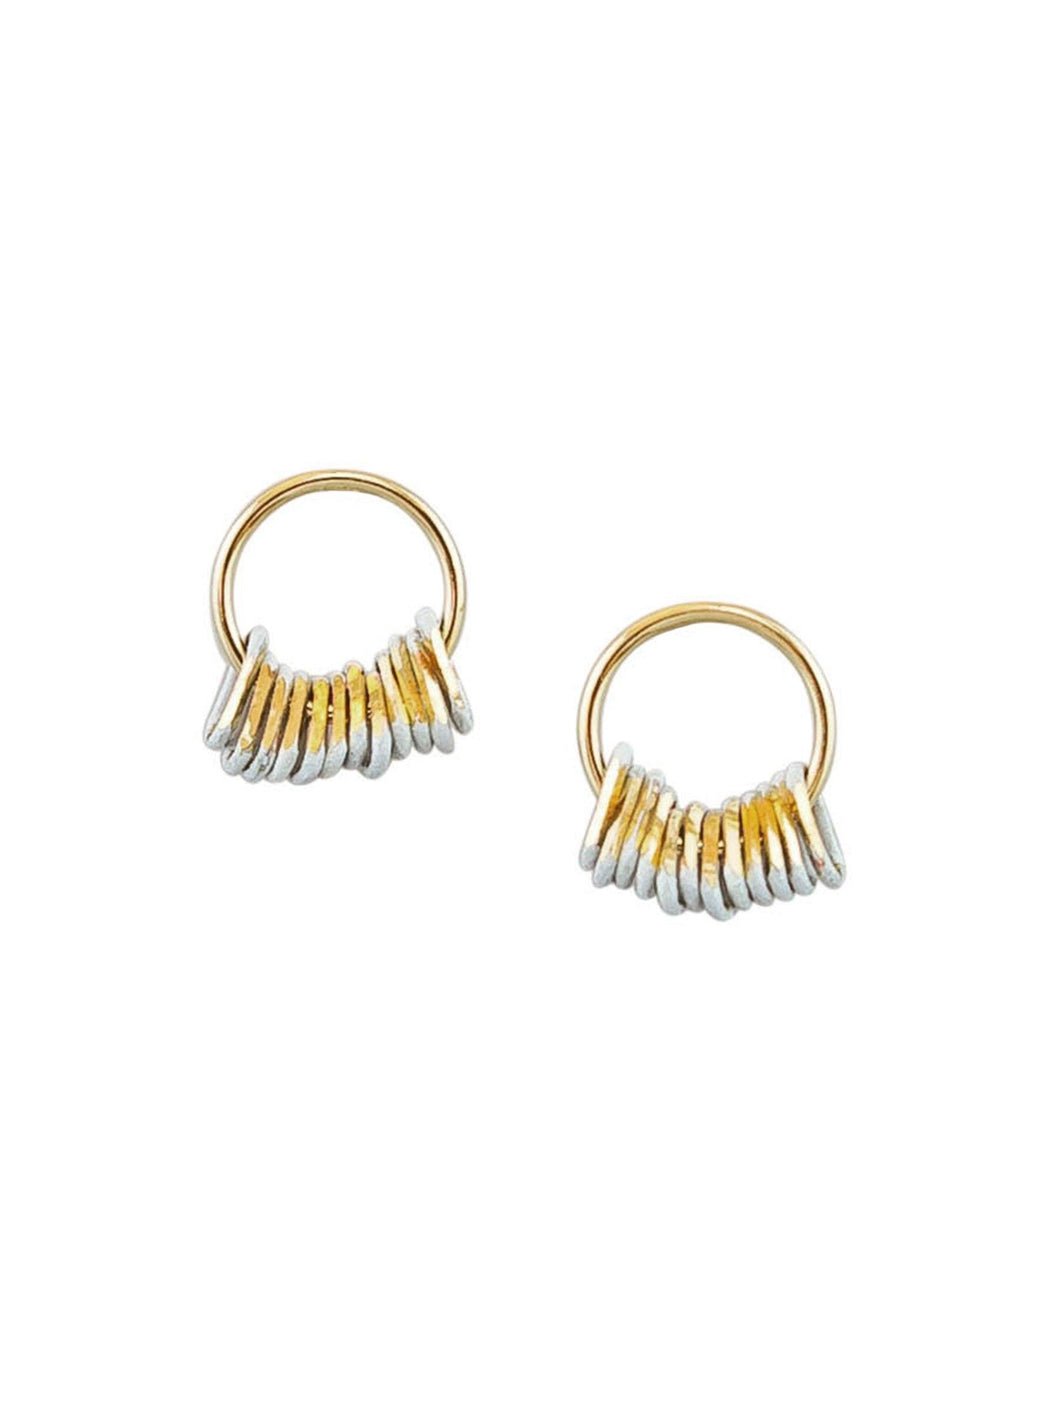 Tiger Tree Mini Me's Earrings Gold and White - Global Free Style